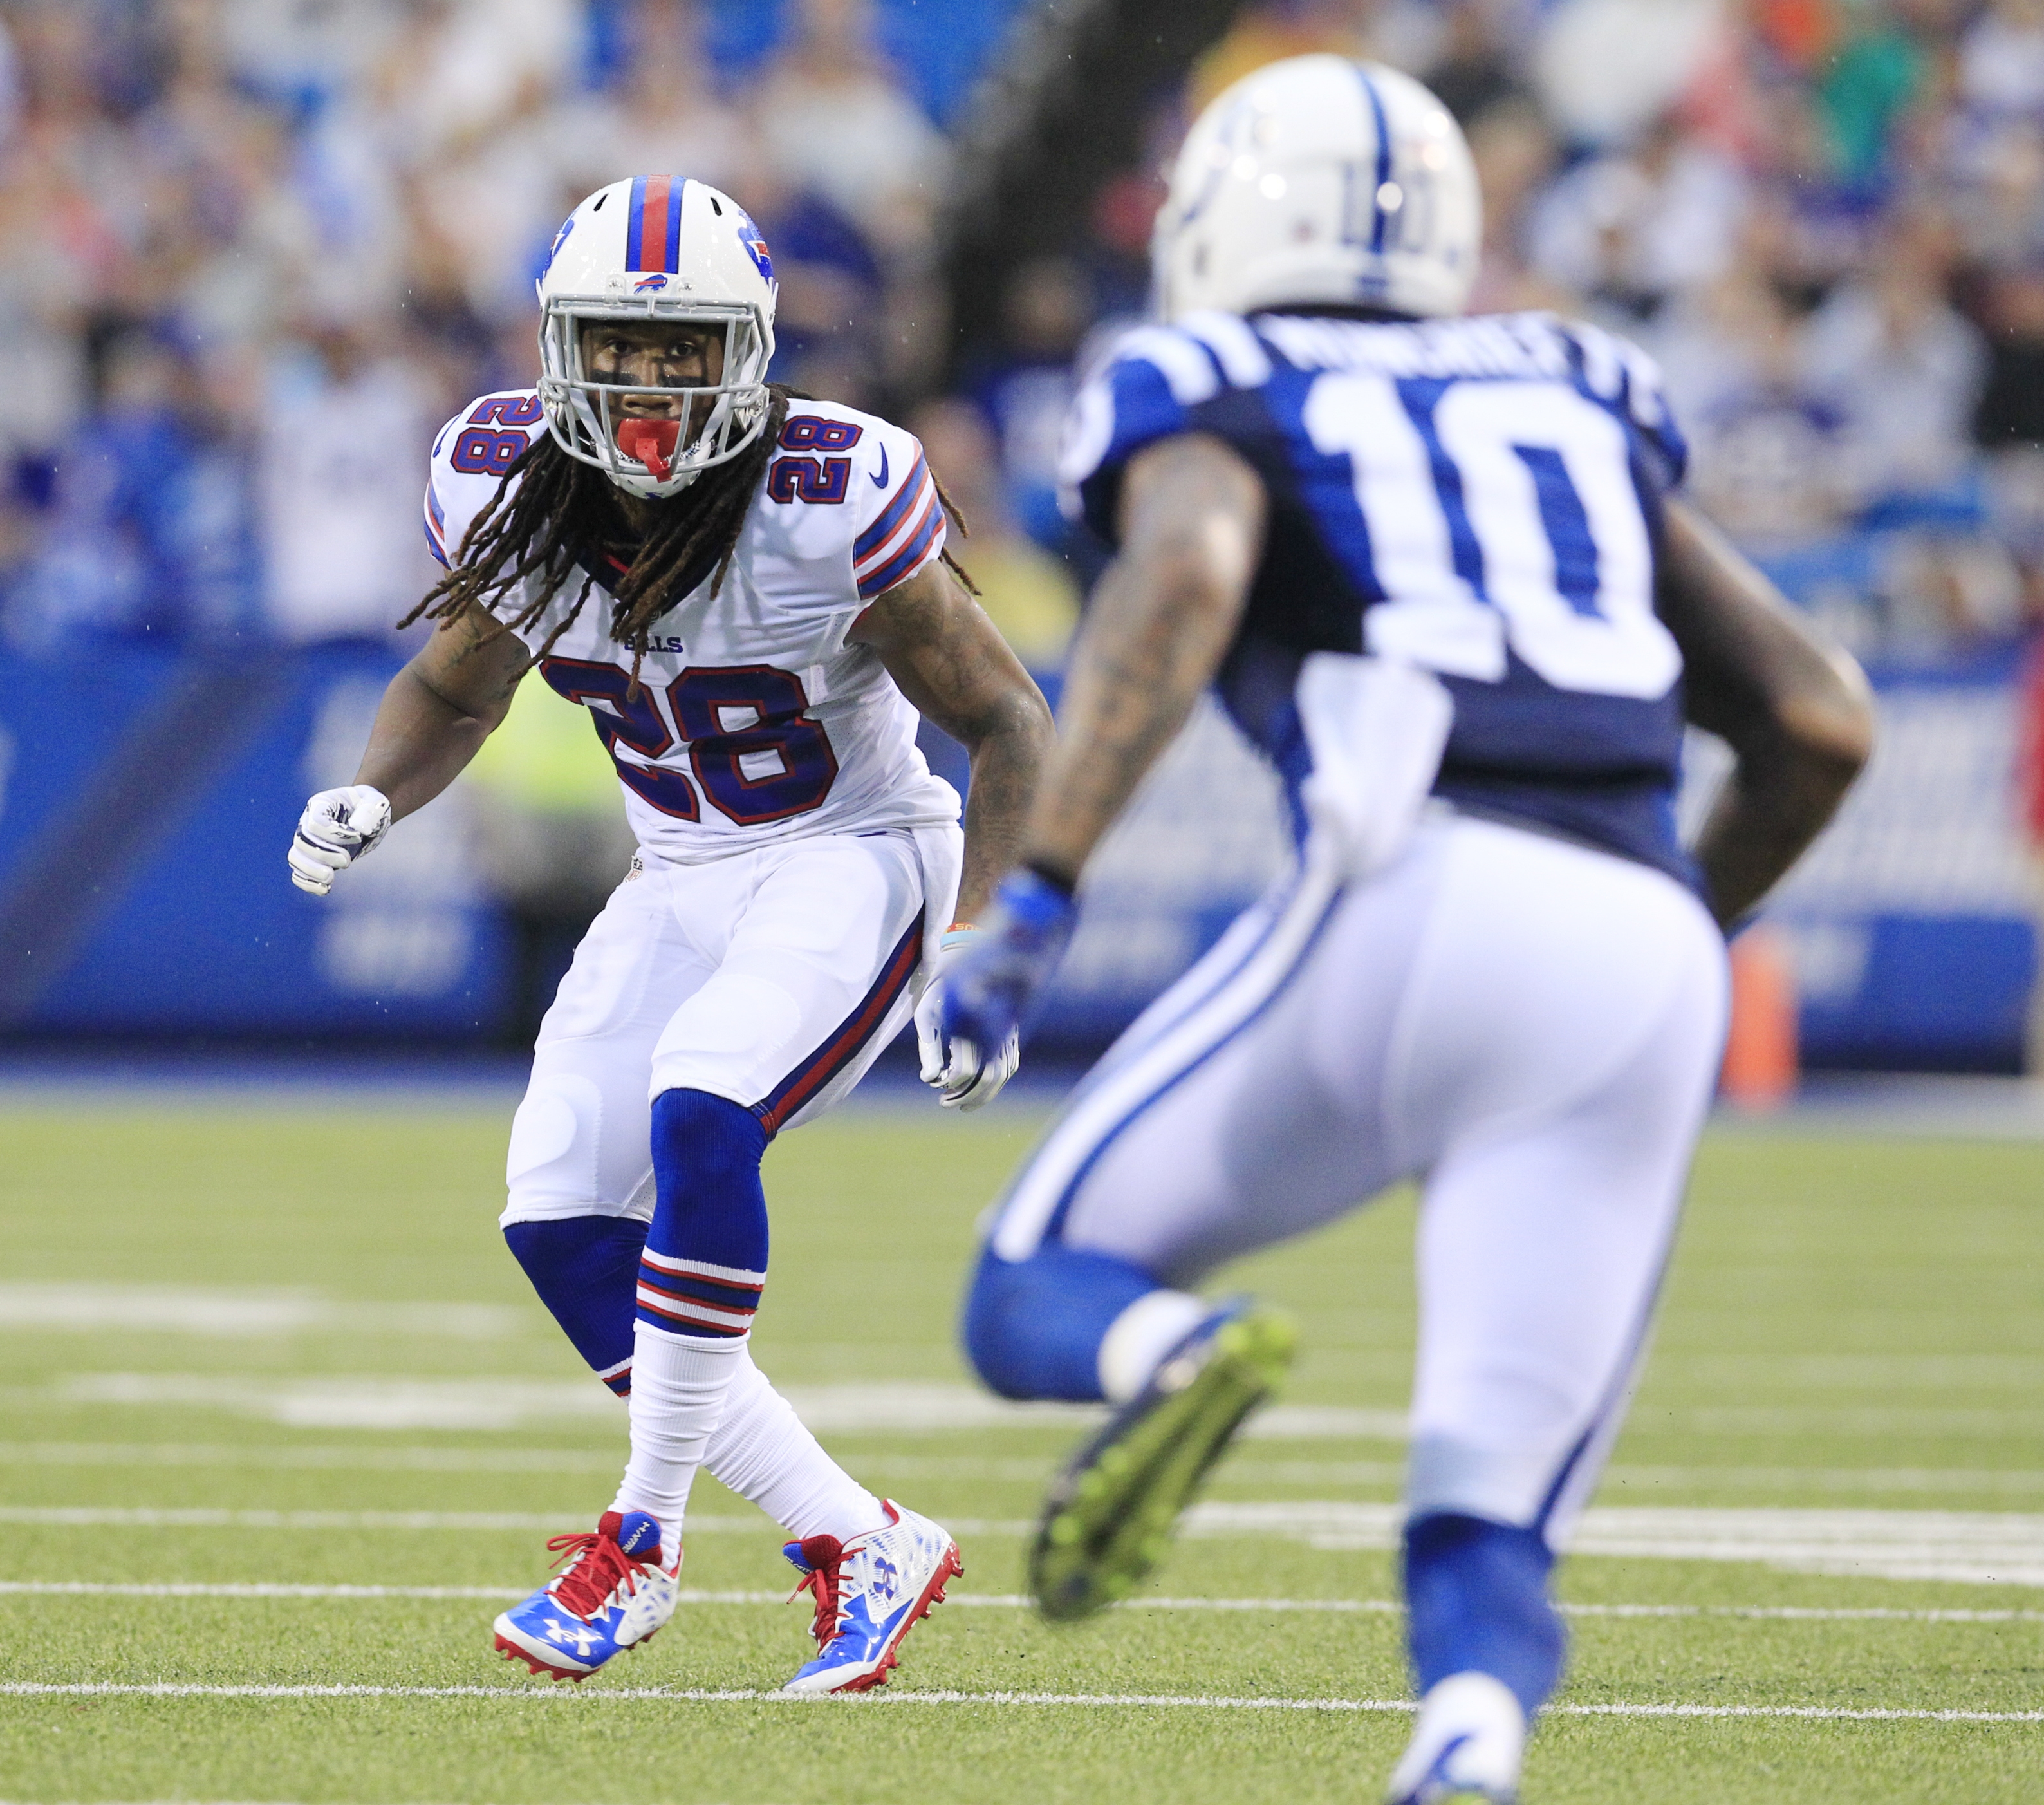 The defensive backfield, with Ronald Darby at cornerback, remains a strength for the Bills.